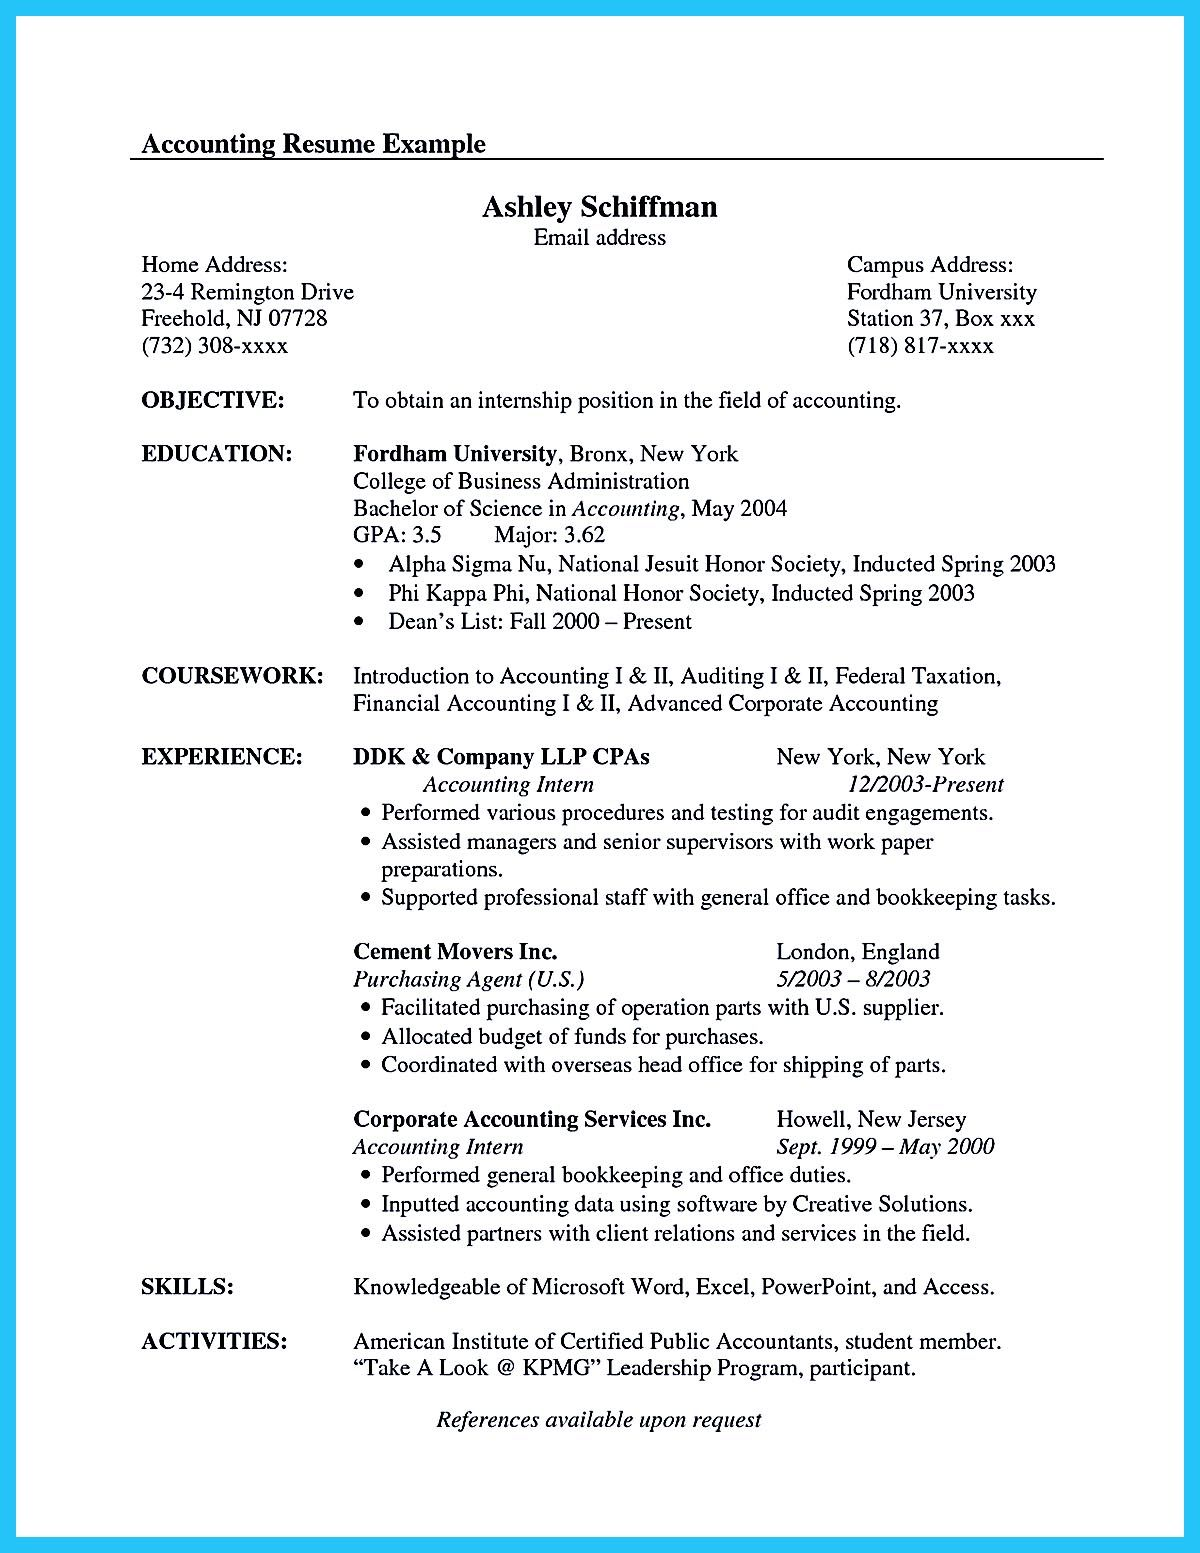 Accounting student resume here presents how the resume of